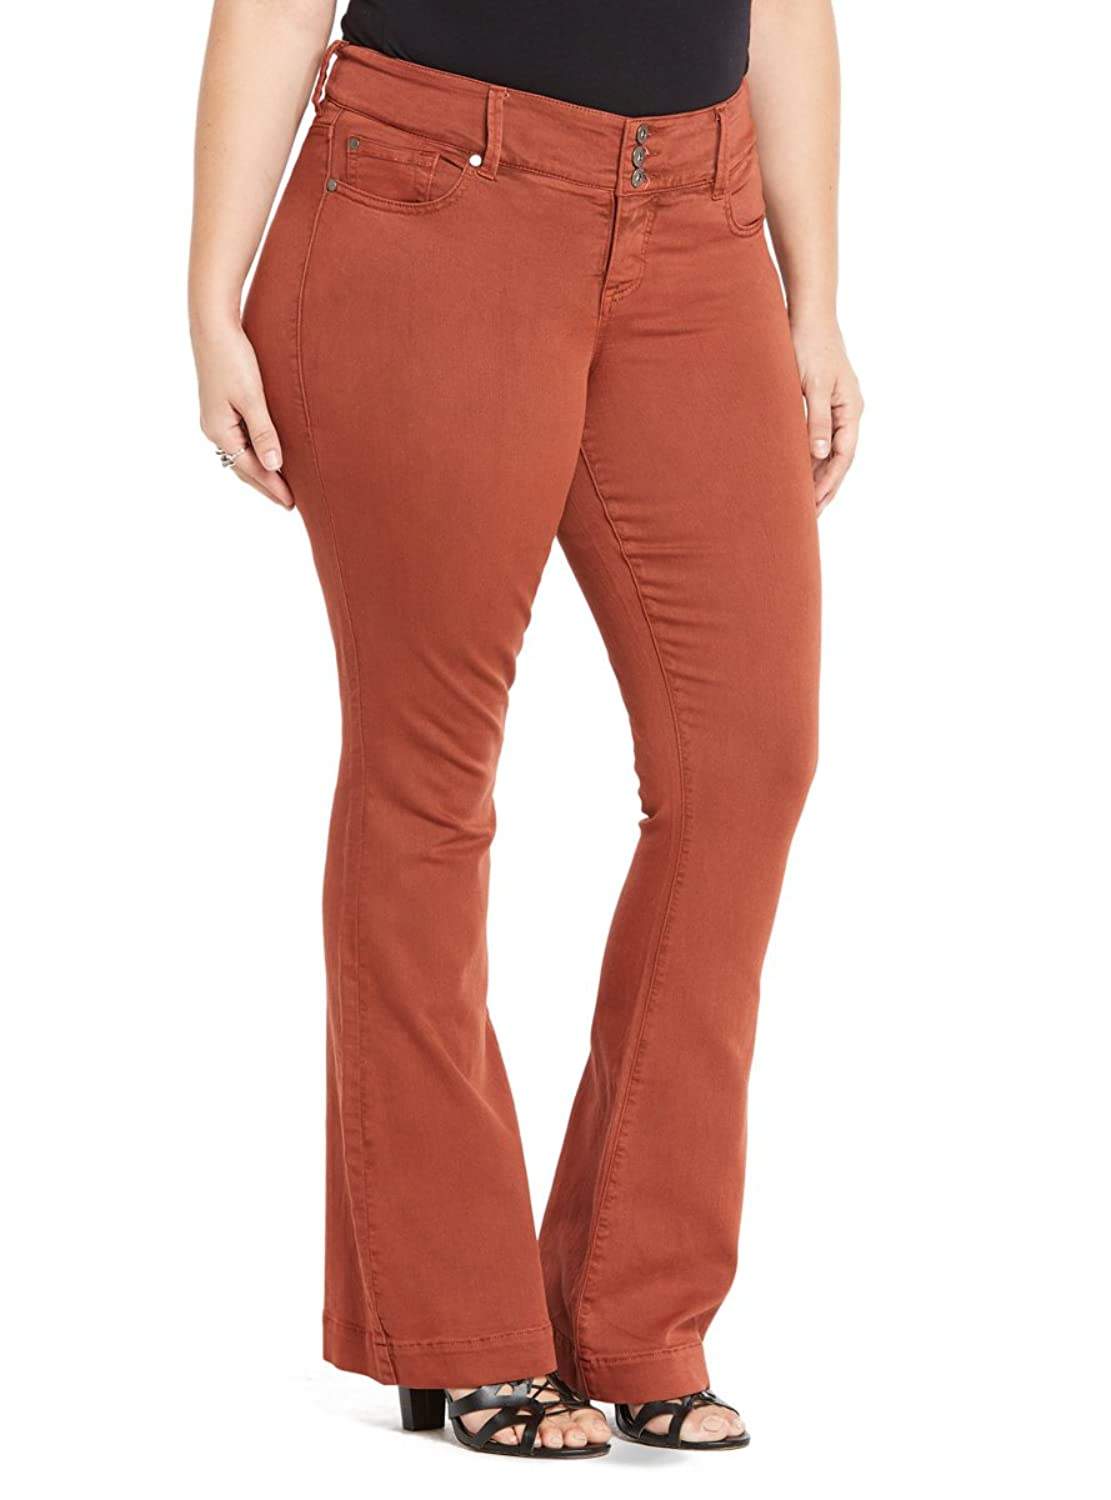 5f5bf0a1eaf07 outlet Torrid Three-Button Flared Jeans - Rust Wash - westexmetal.com